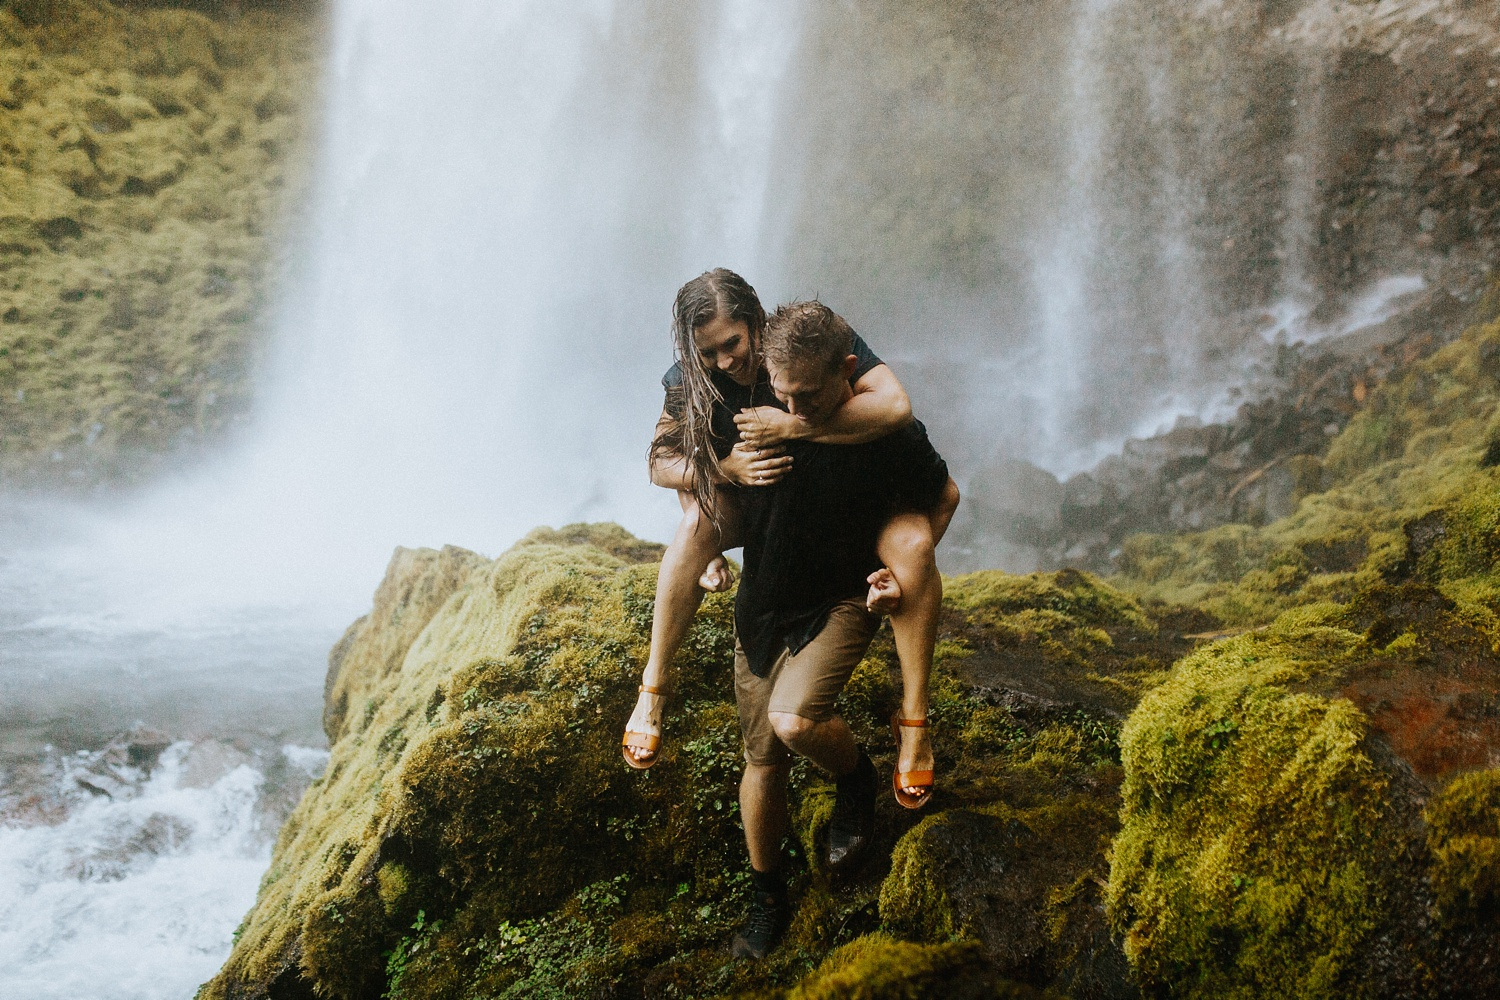 Lethbridge wedding photographer, Alberta wedding photographer, Alberta elopement photographer, Banff wedding photographer, Banff elopement photographer, adventurous photographer, Canada, Alberta, waterfall_3